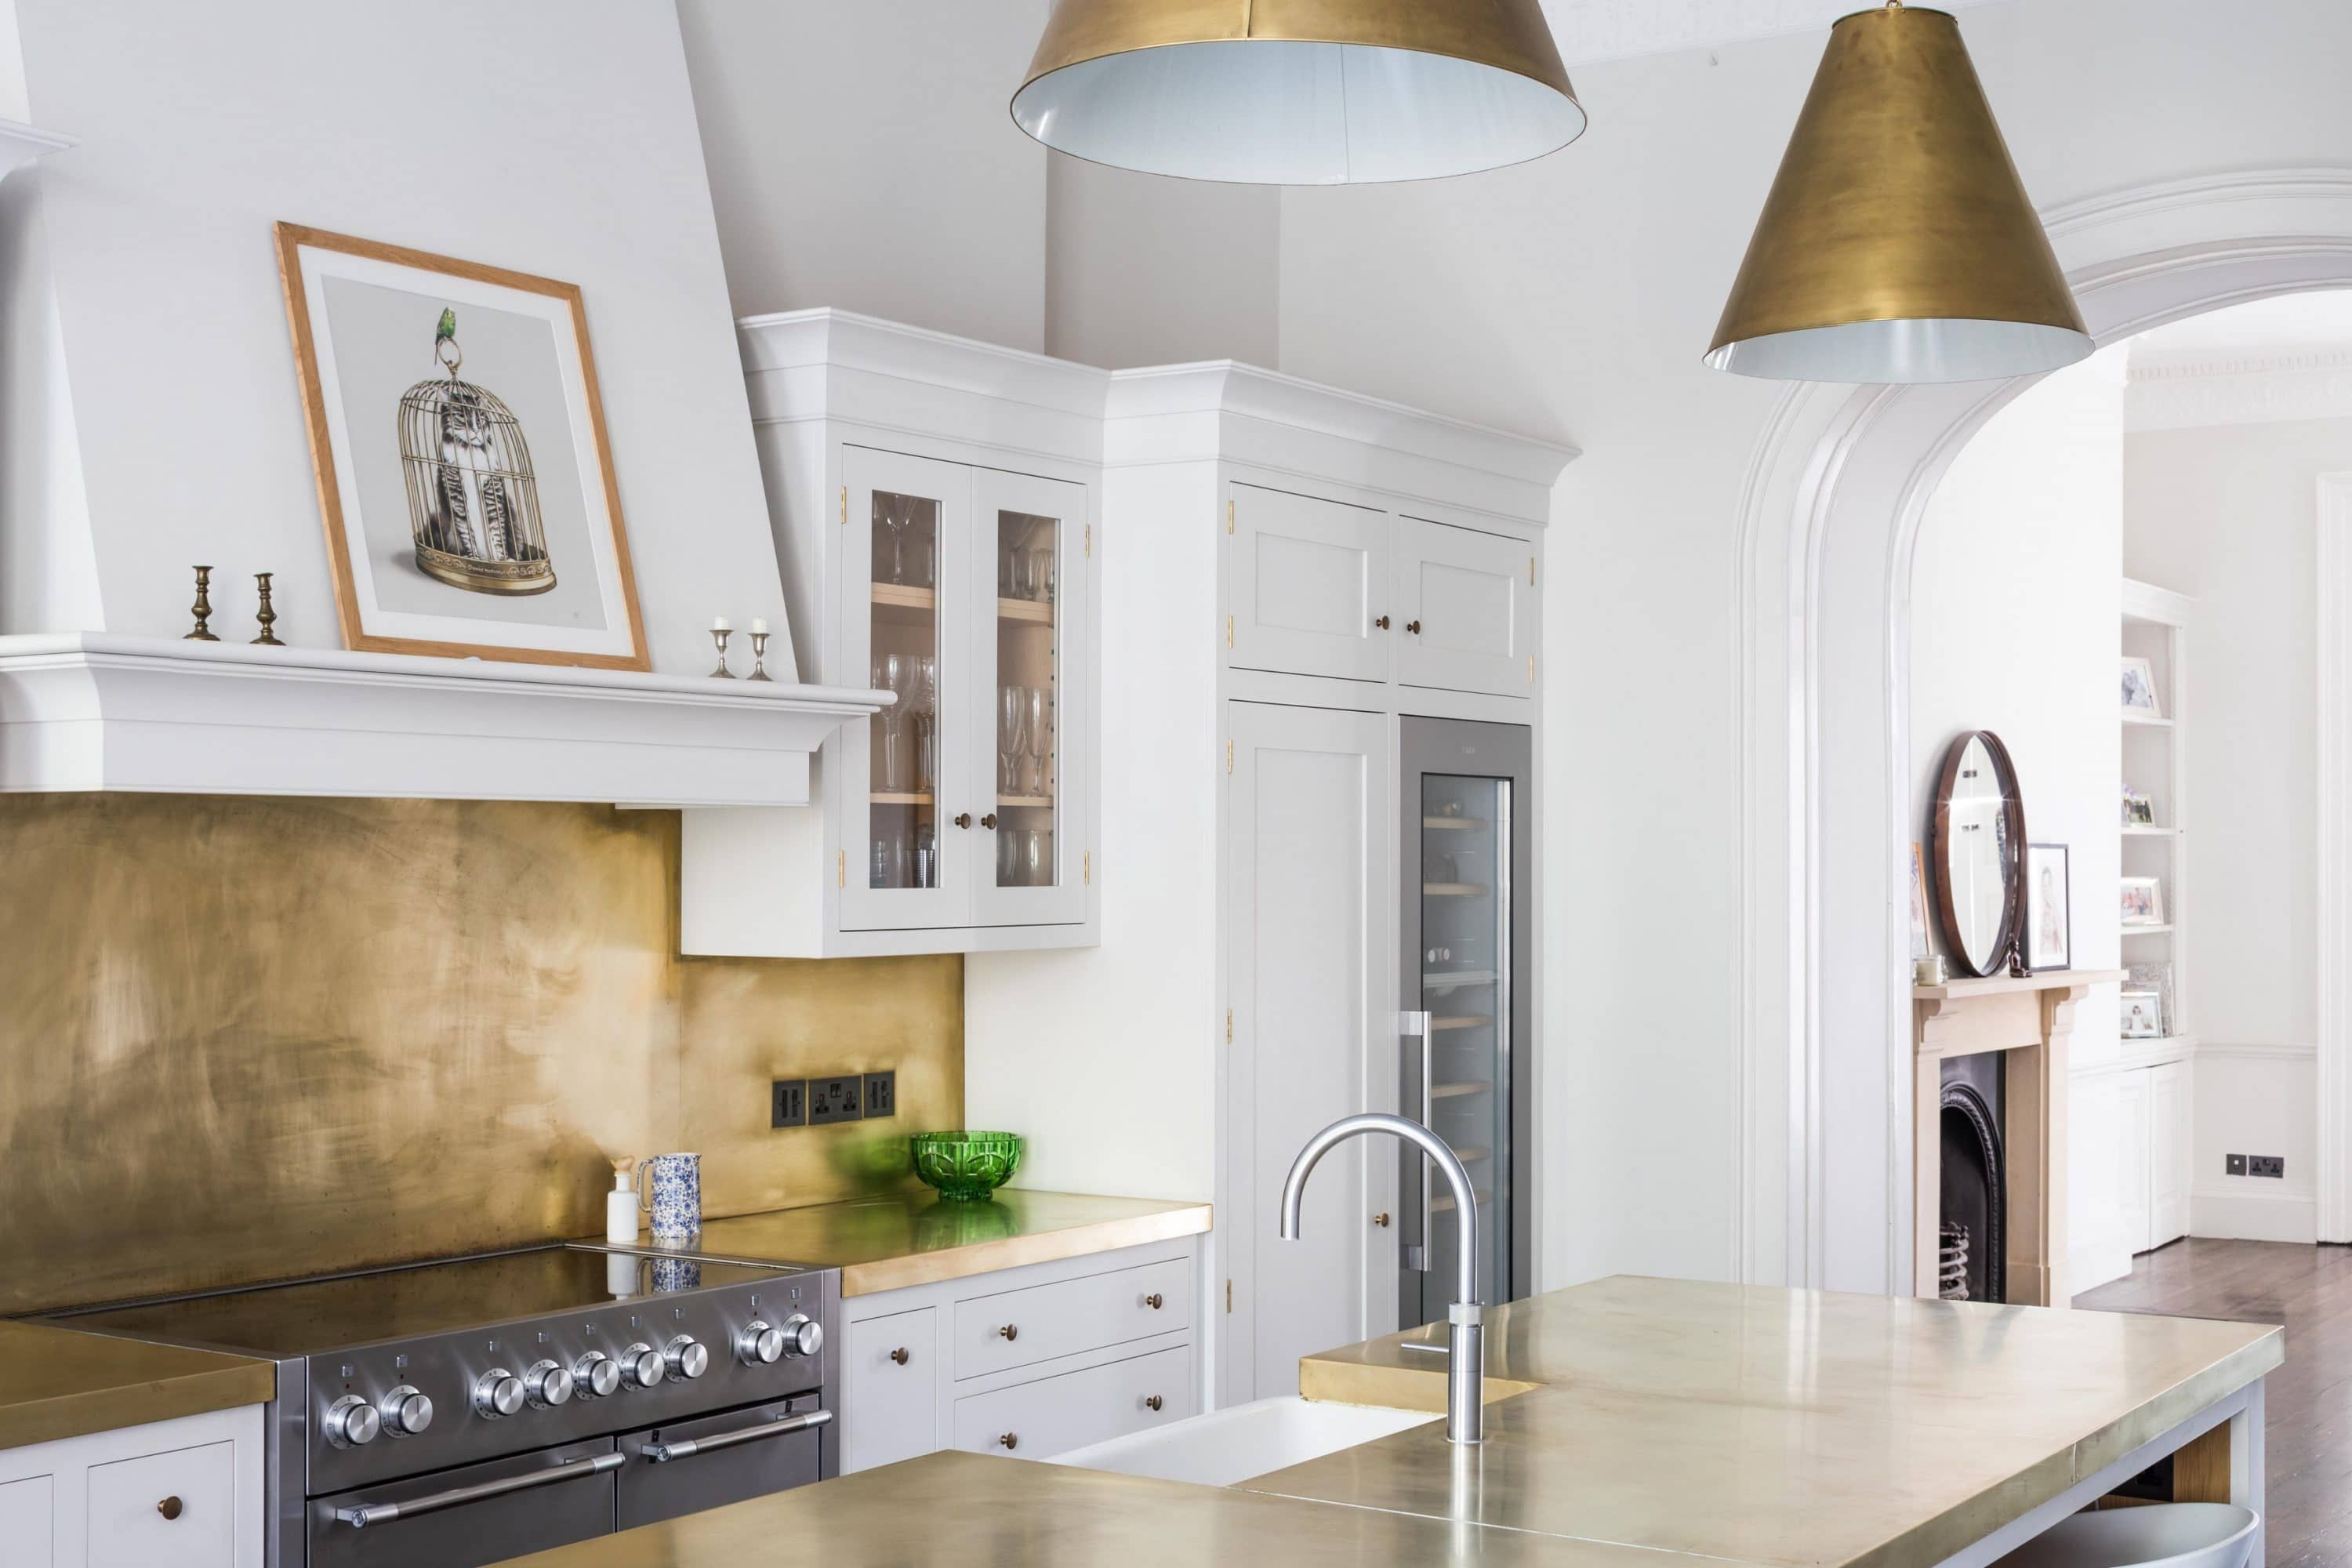 Best View Of Shaker Kitchen Cabinets Painted In Farrow Ball 400 x 300